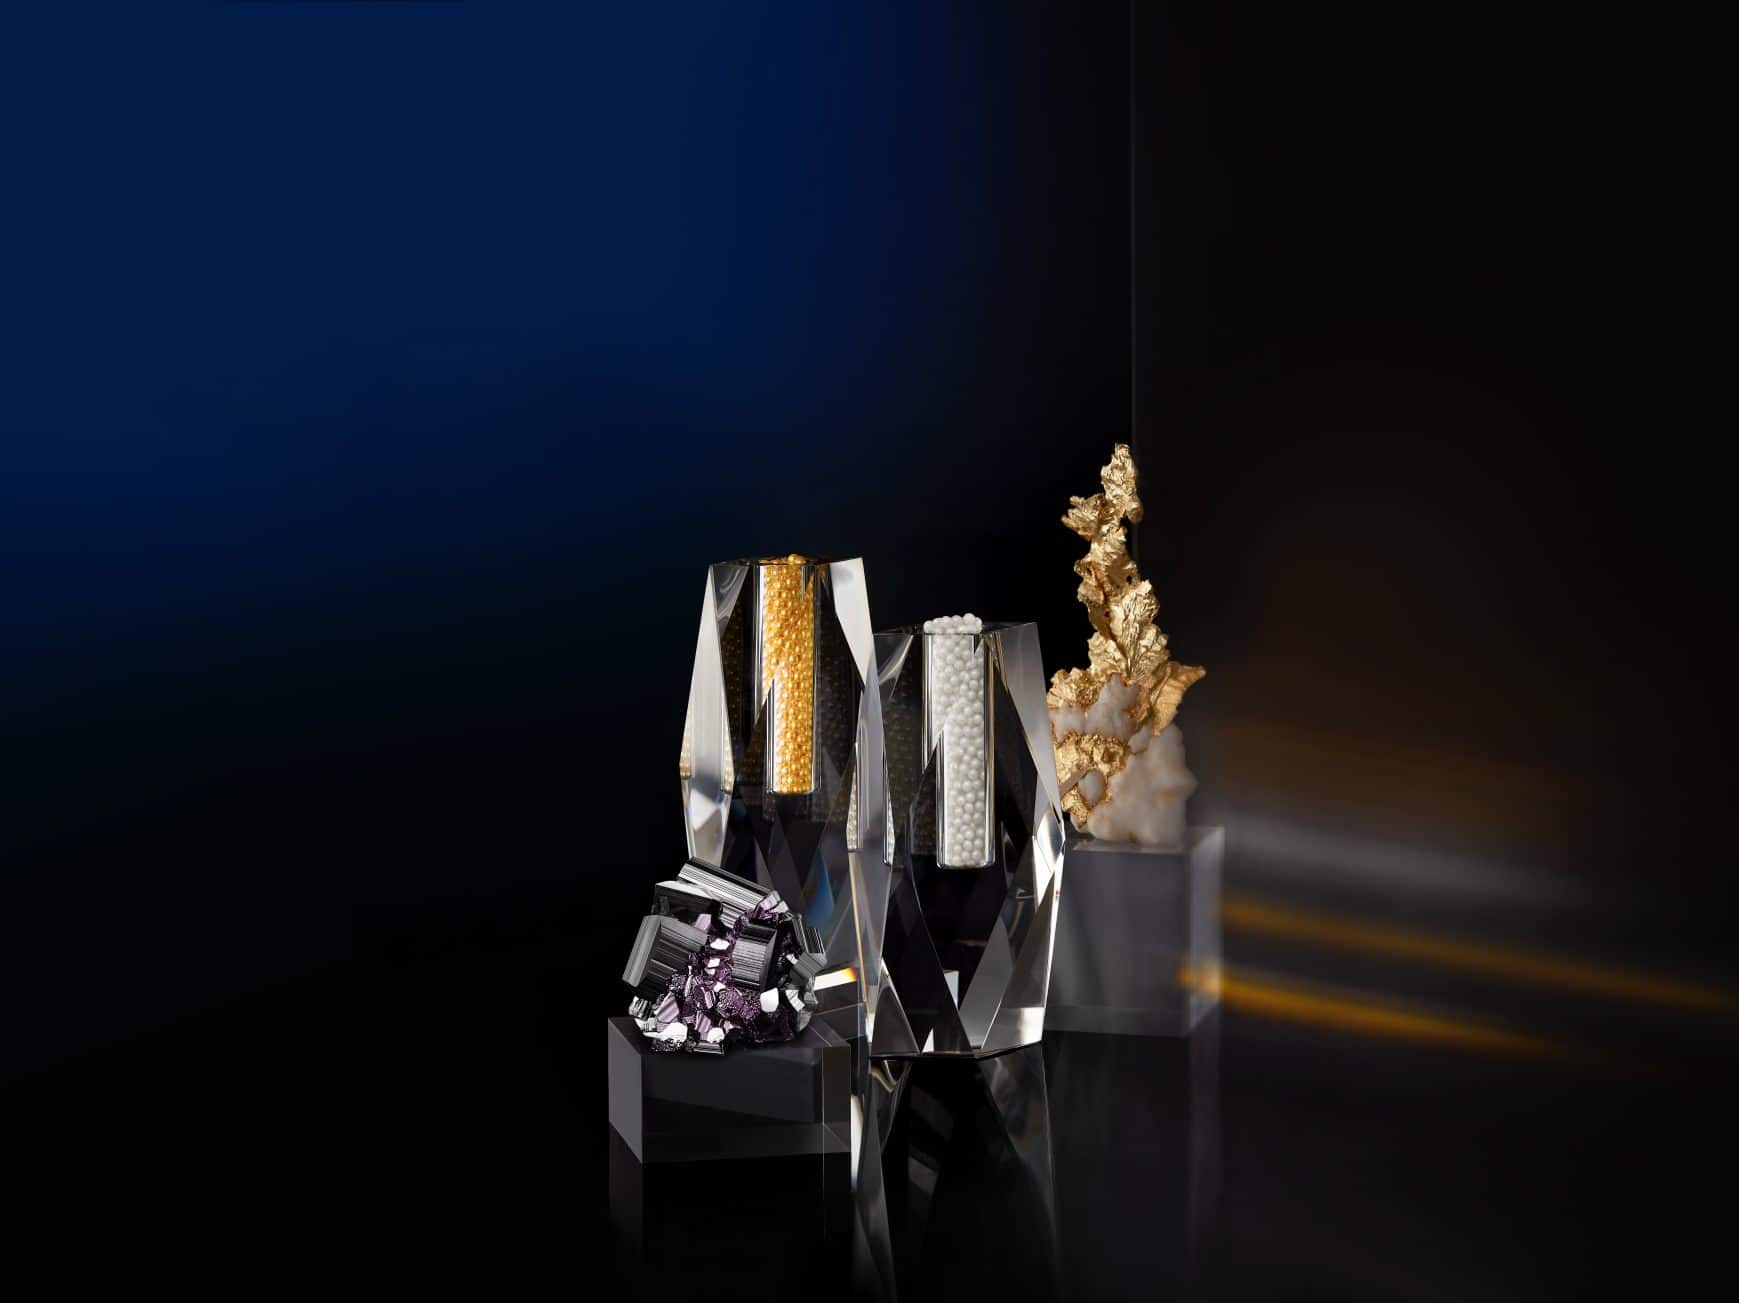 La Prairie tells a tale of luxury through its enigmatic new video campaign